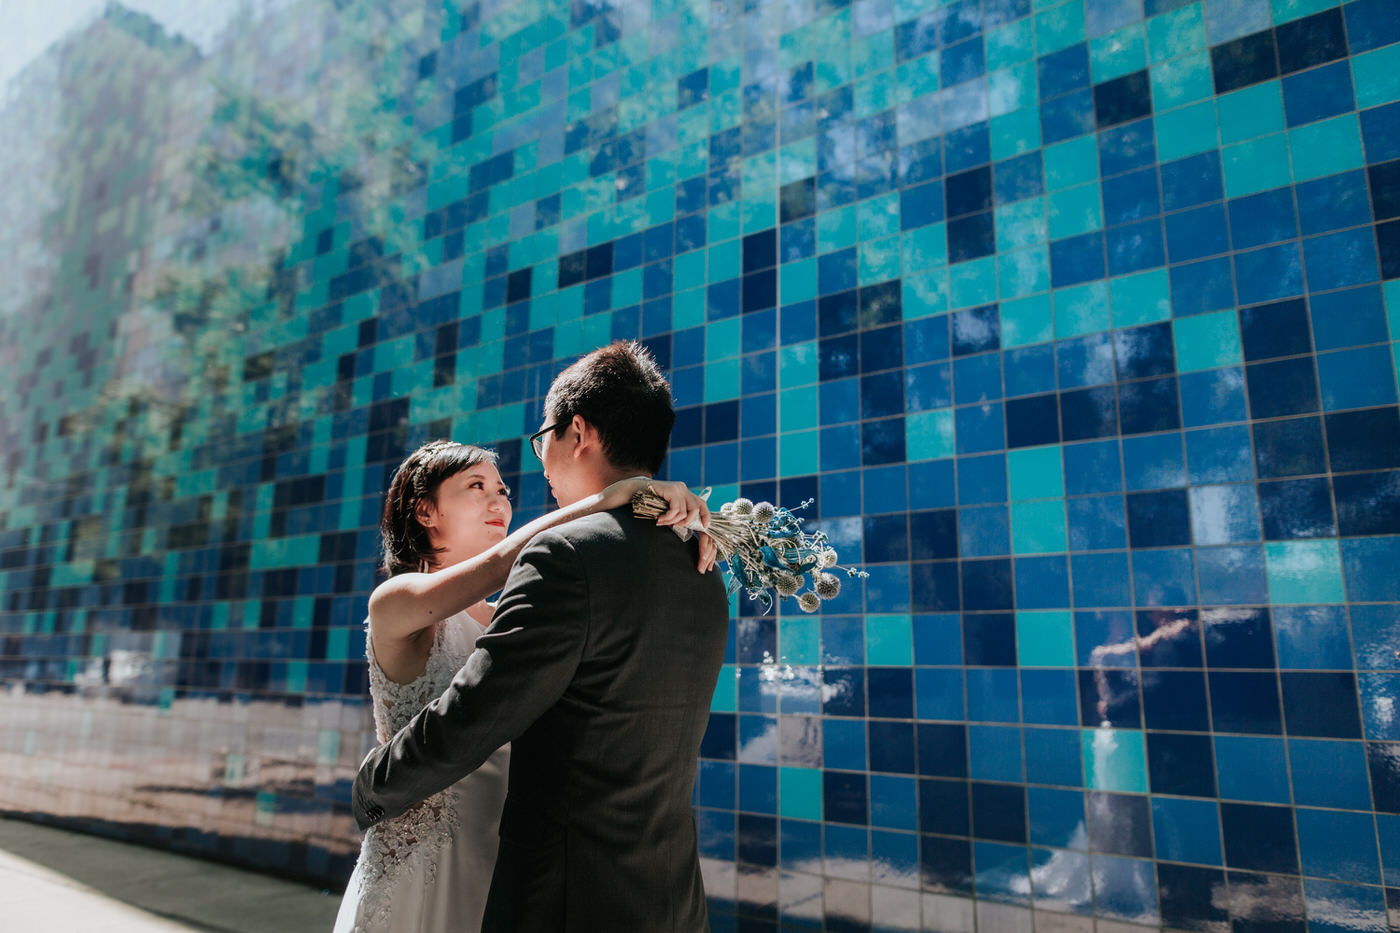 Couple at the Blue Tile Wall downtown Austin